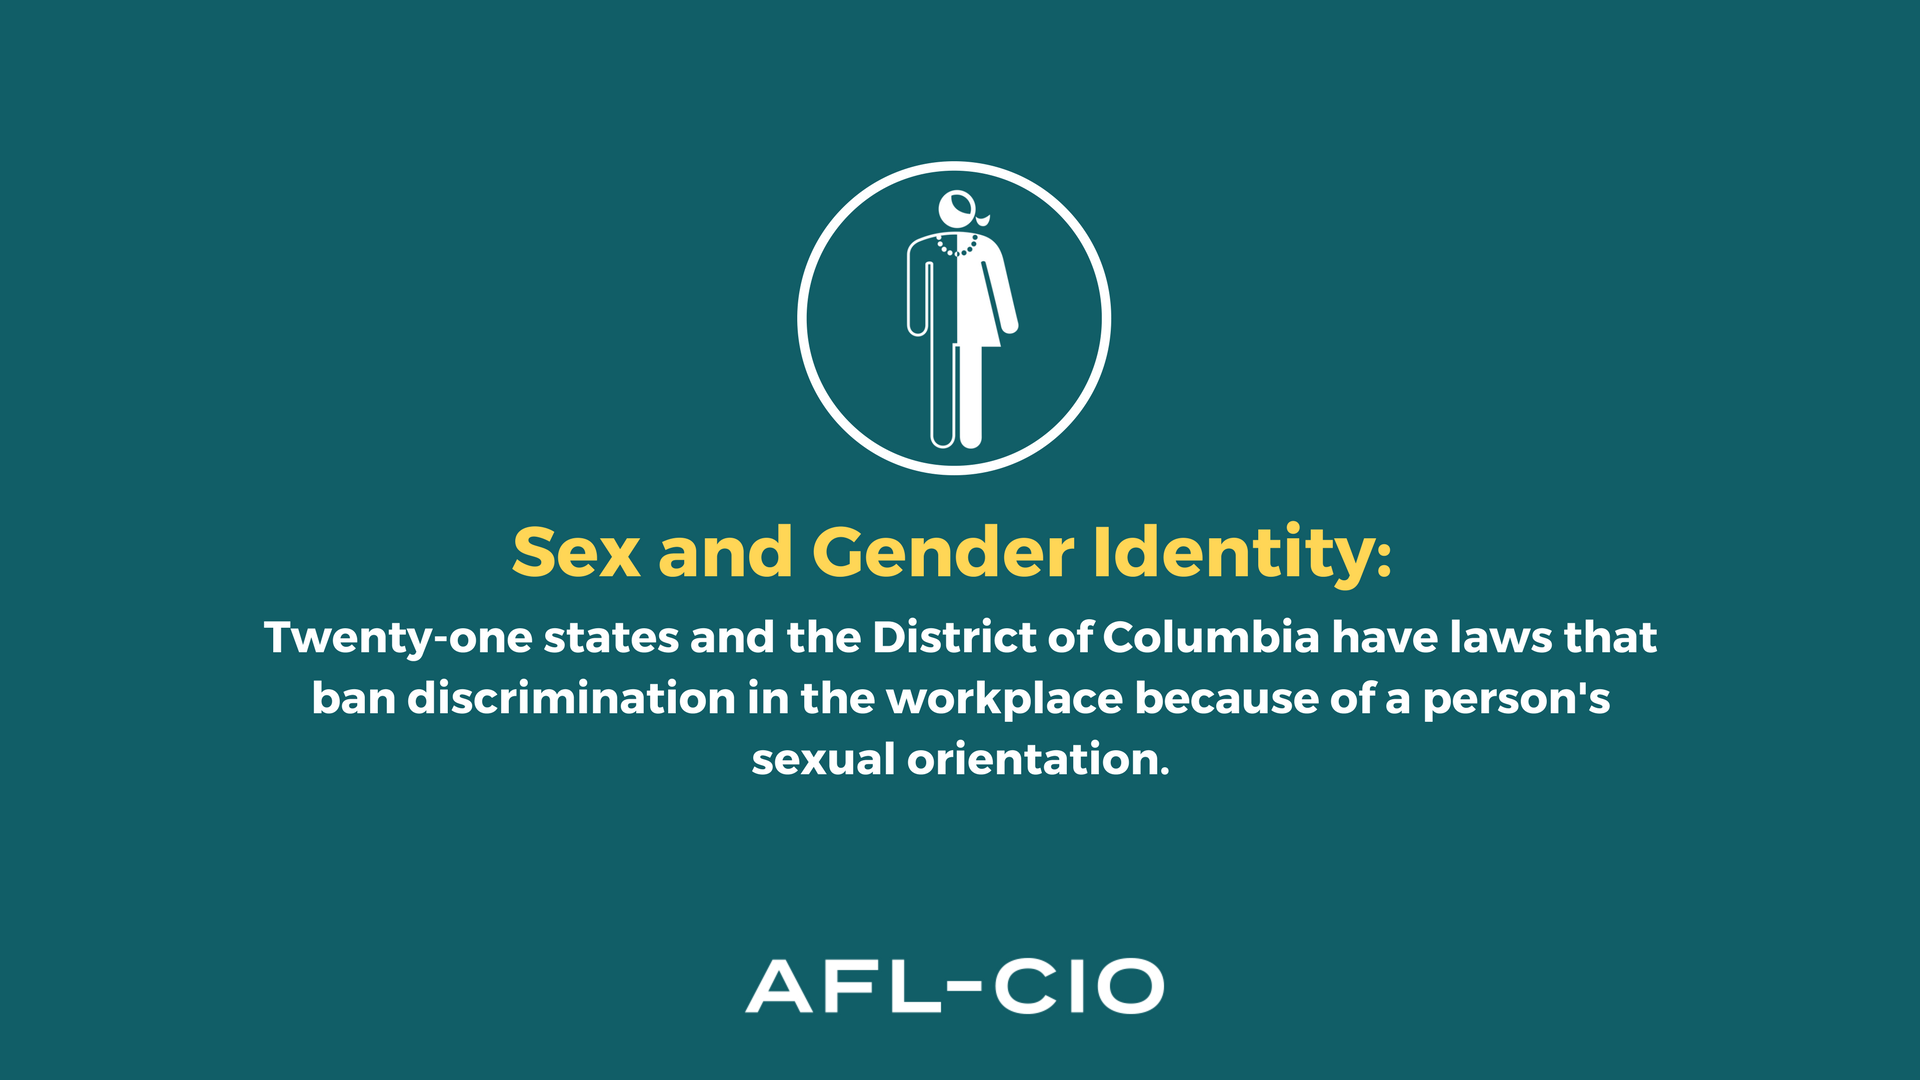 21 states and the District of Columbia have laws that ban discrimination in the workplace because of person's sexual orientation.